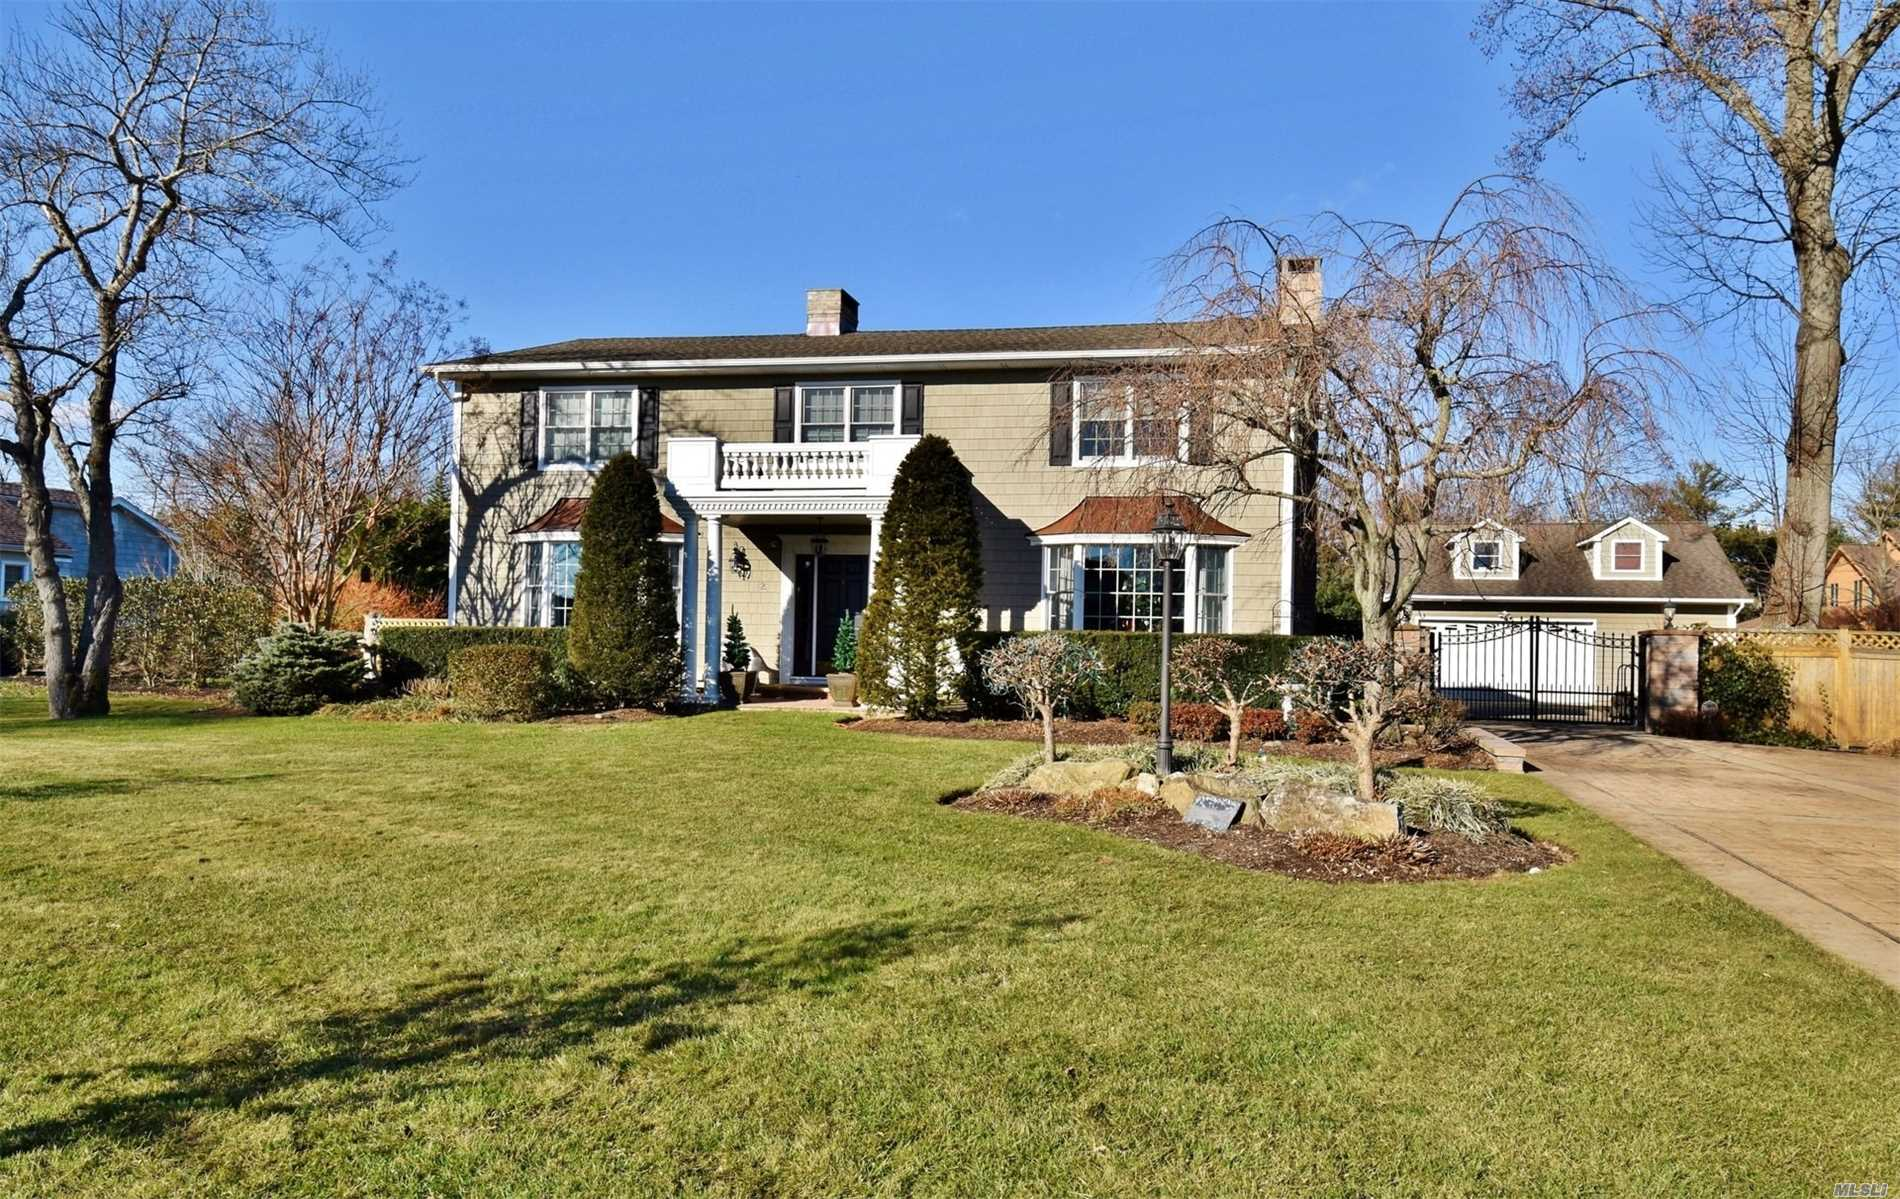 Beautiful Oak Nk Estates, Ren In 2015 Anderson Tw400 Windows, New Roof, Cedar Shake Vinyl Siding, Custom Stone-Walled Family Rm/Den Gas Fp, Formal Living Rm W/Wood Fp, Wainscotting And Architectural Moldings Central Ac & Vac, At&T Digital Security, 14Kw Generac Home Gen, Bi-Level Stone Dk, With Stone Patio W/Waterfall & Fire Pit, 800 Sq Ft 2.5 Car Heated Det. Garage Perfect For Car Collector & Home Hobbyist, For Music Afficianado A 500' Sound Proof Record. Studio Or Work Out Rm